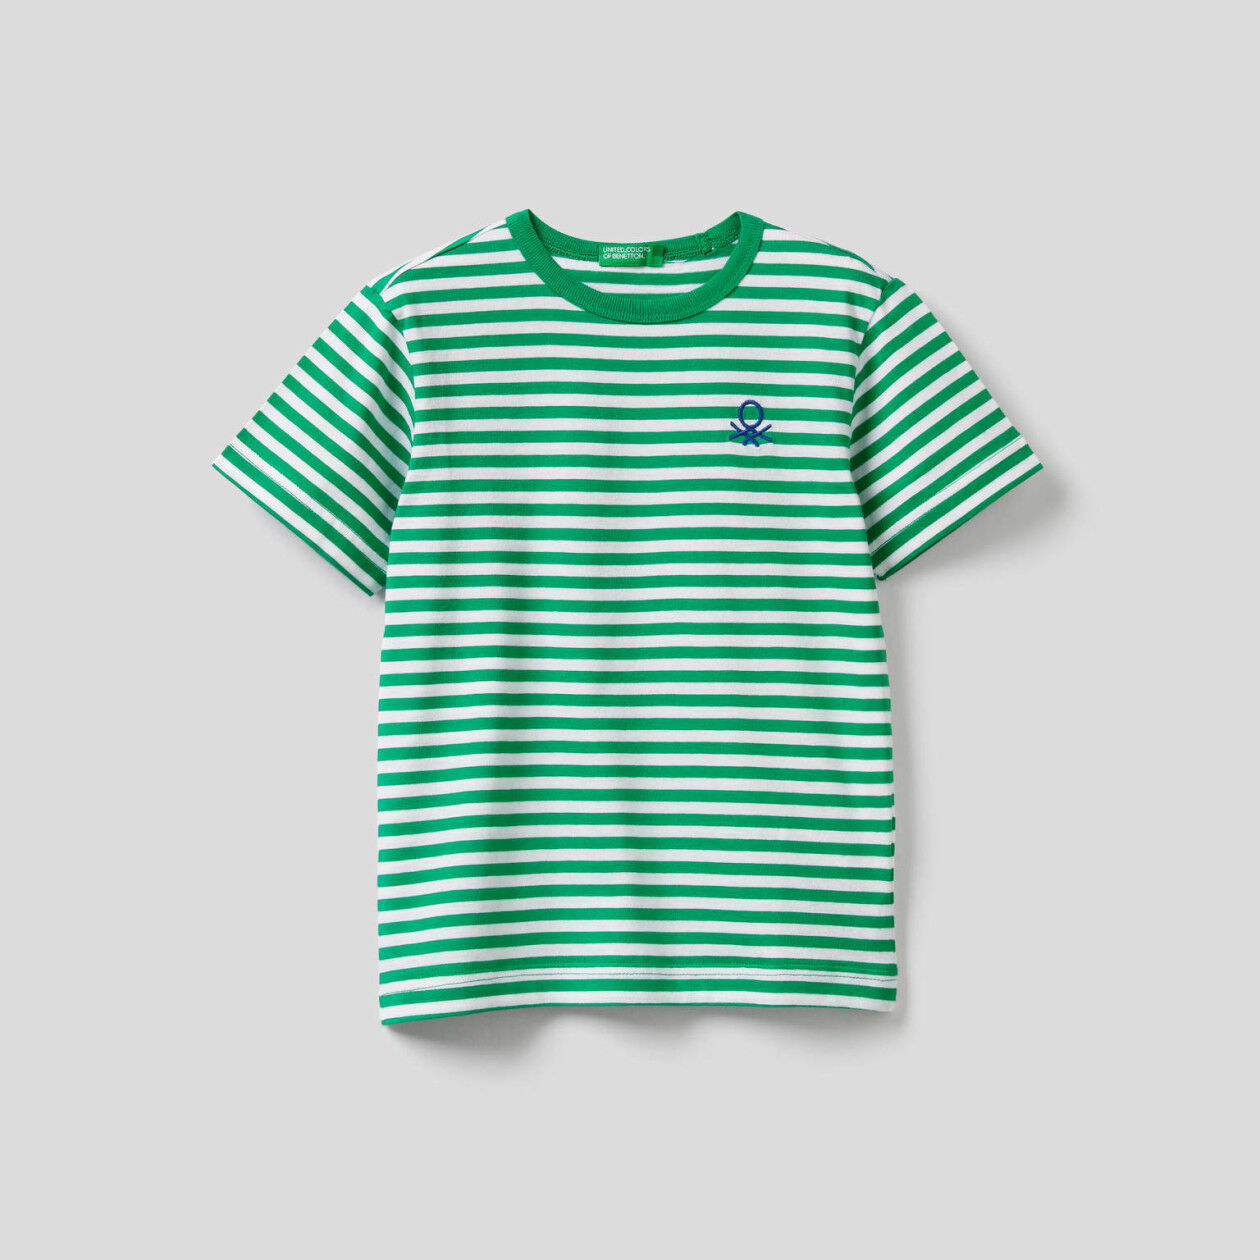 T-shirt with embroidered pocket